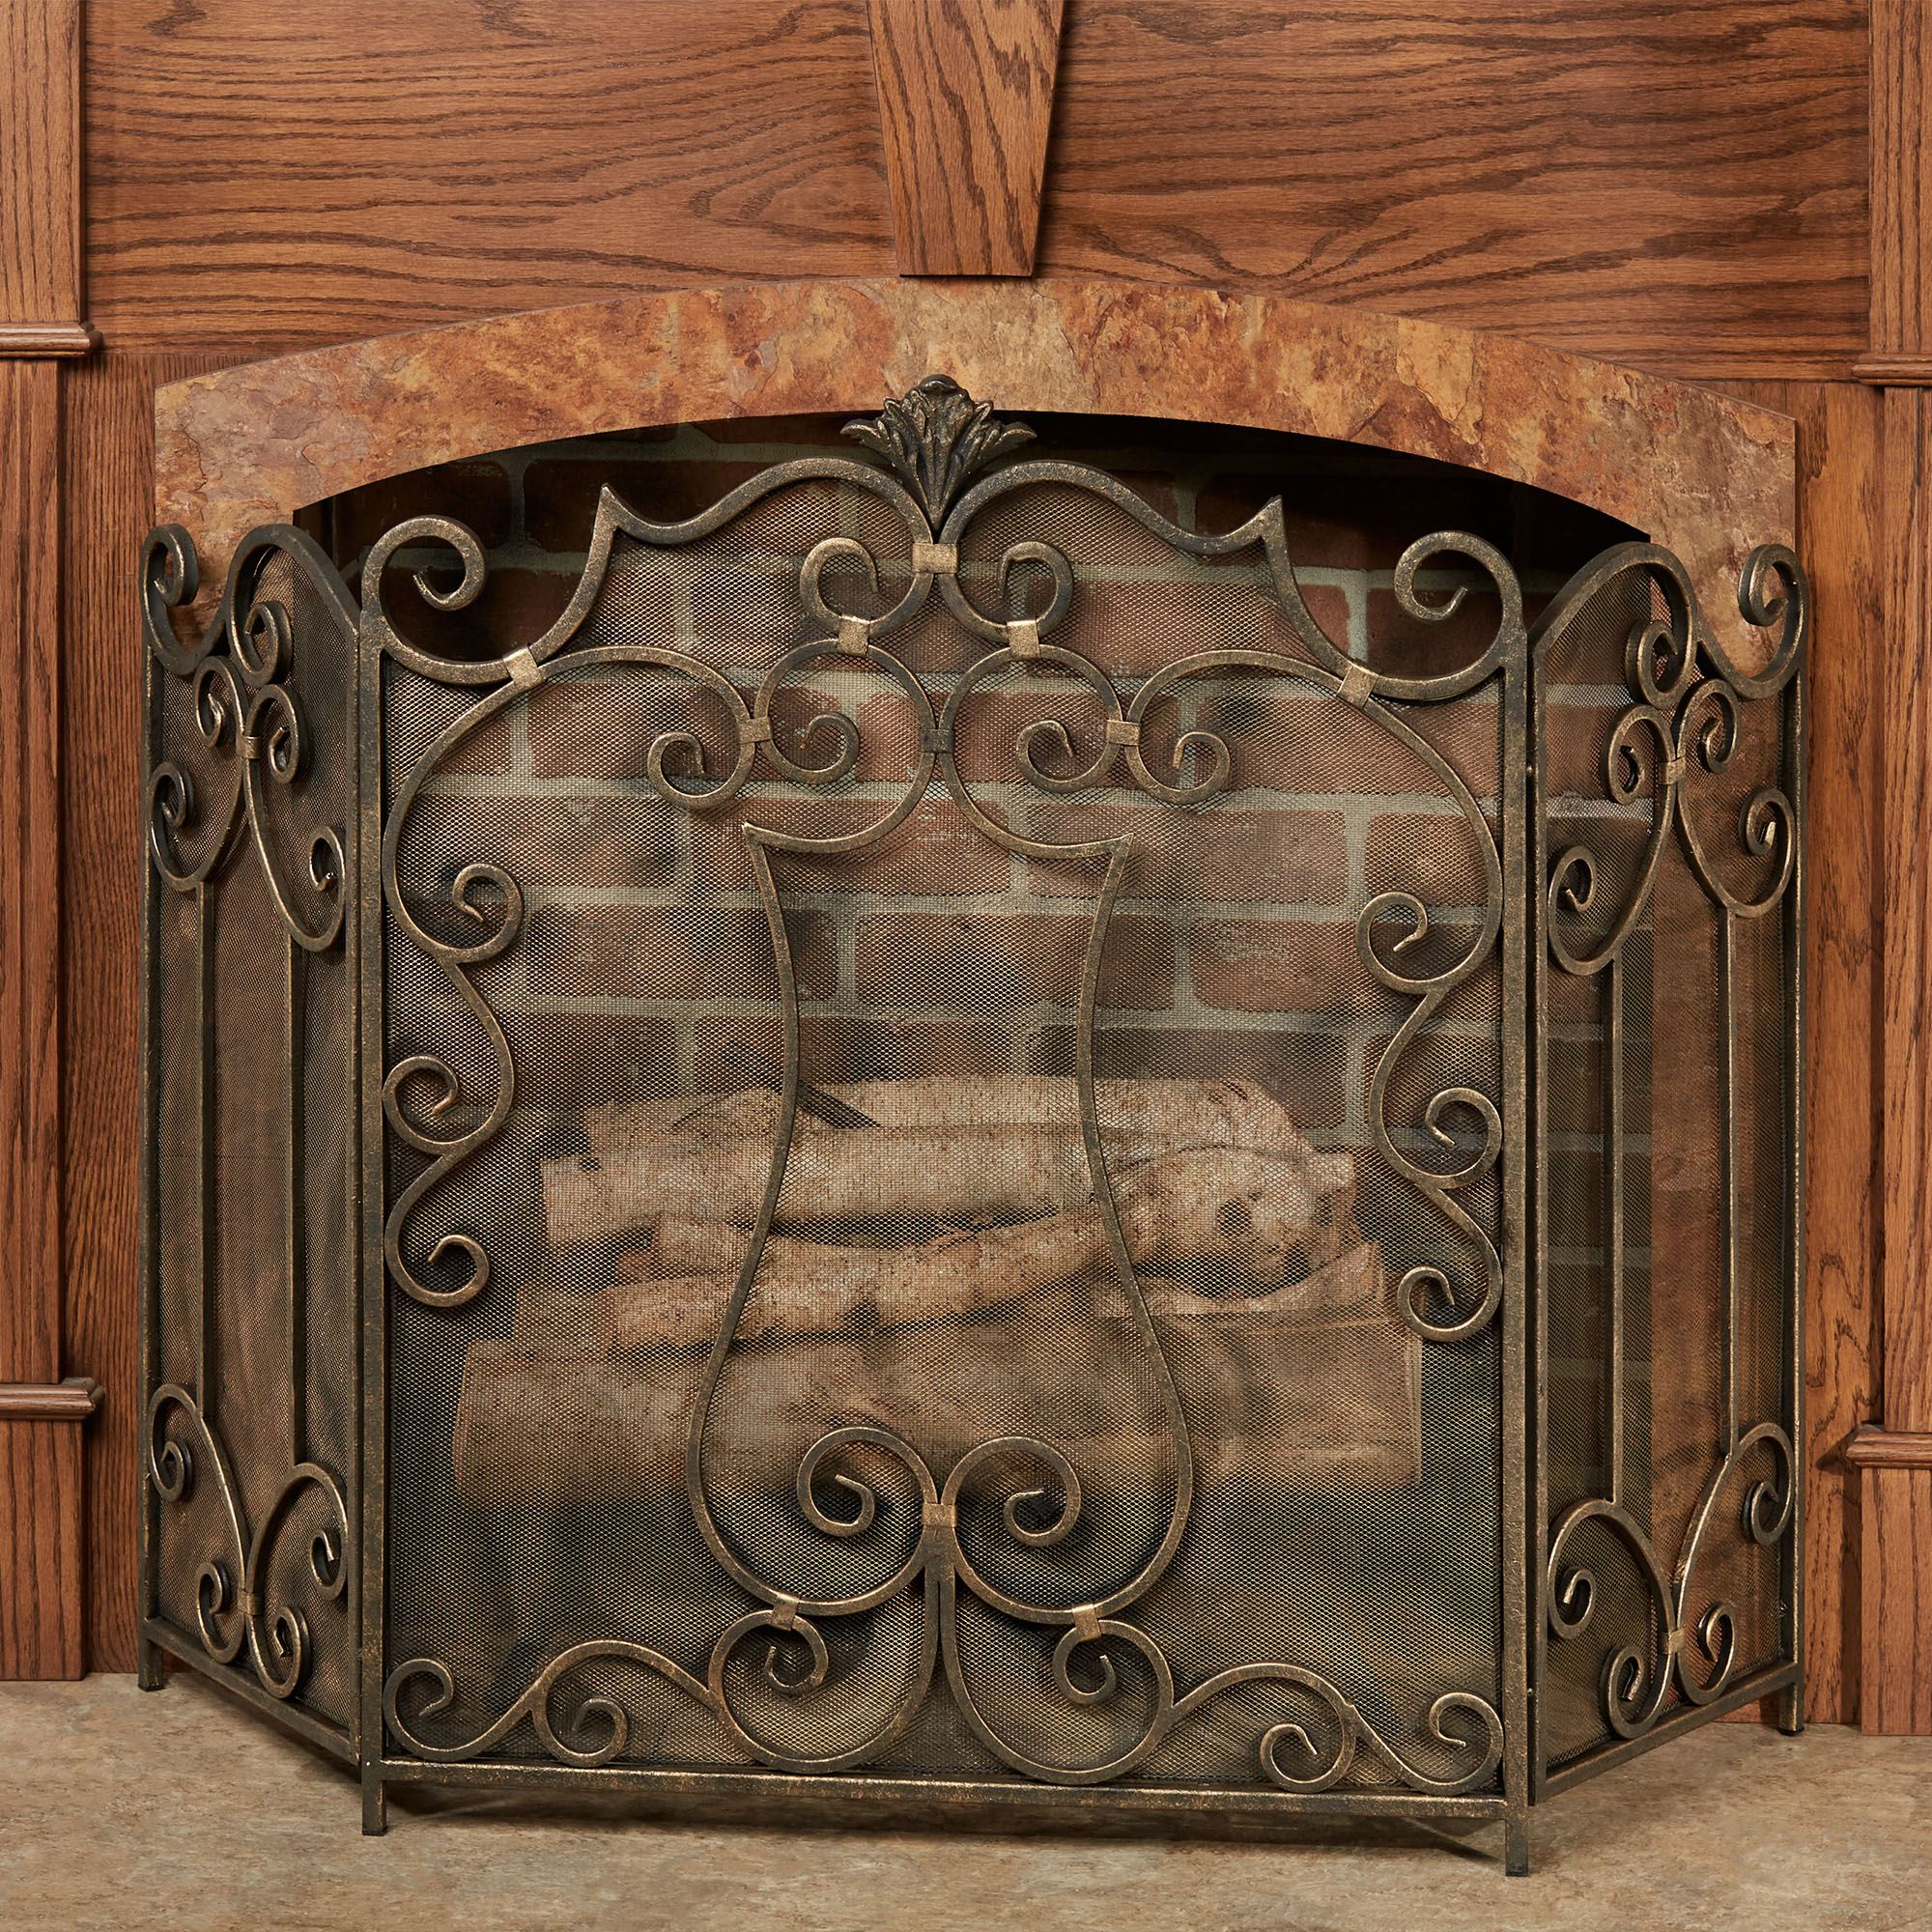 The exquisite detailing on the majestic Belleville Fireplace Screen brings old style elegance to your decor. Burnished silver/gold metal features a textured...